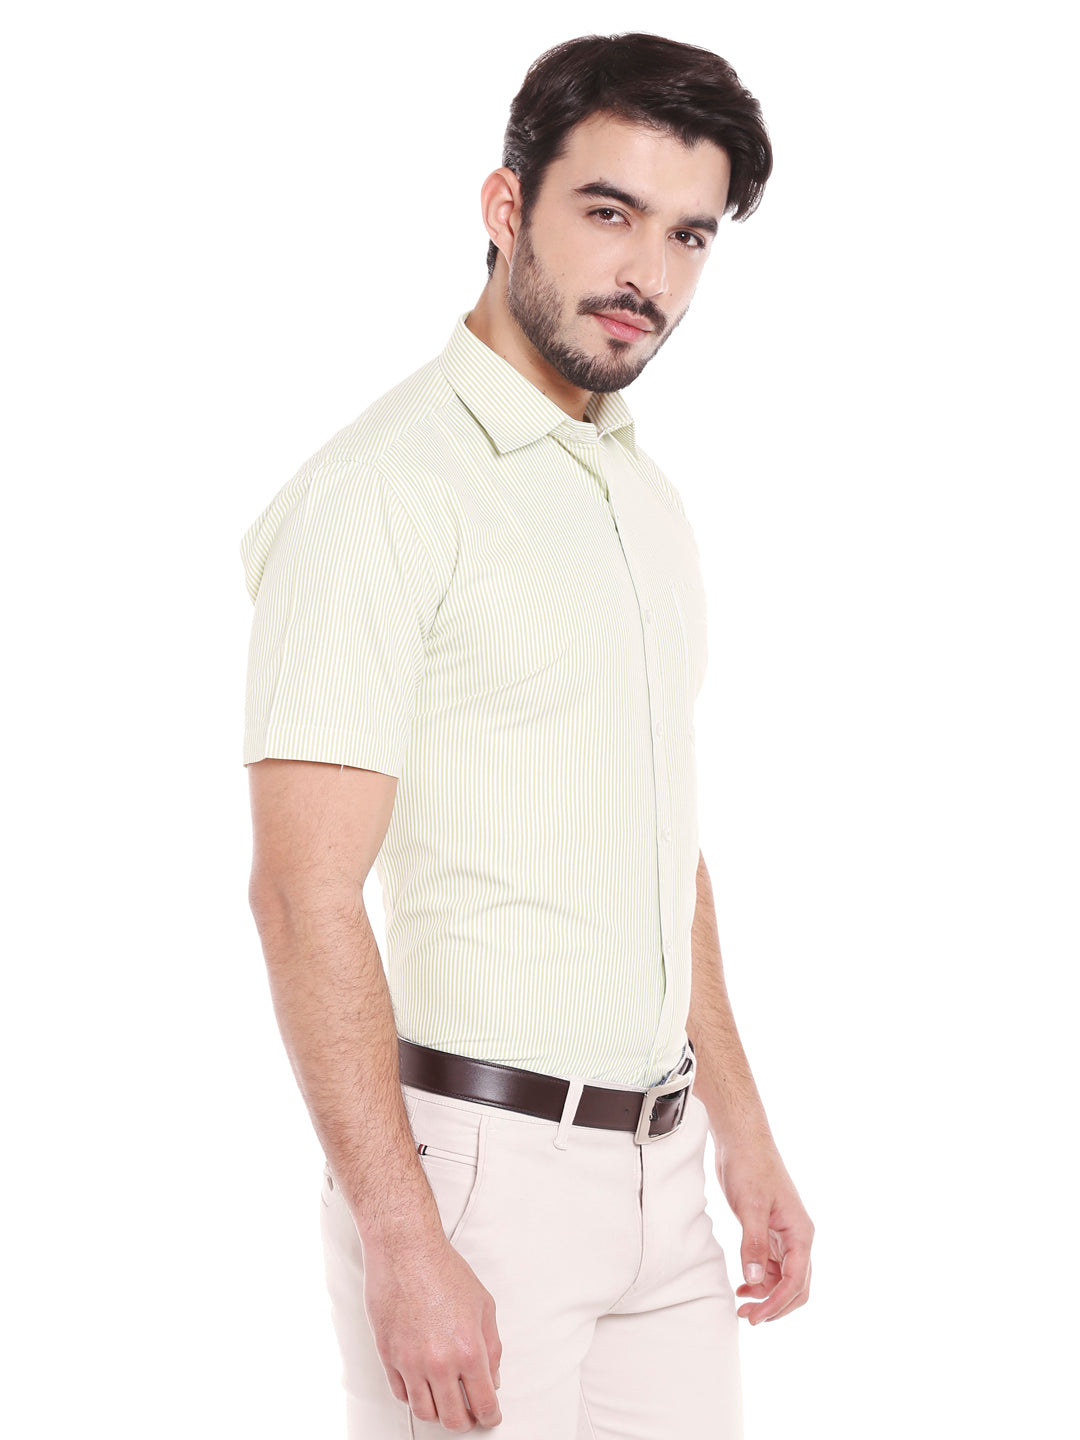 ZIDO Blended Striped Shirt for Men's SH5140